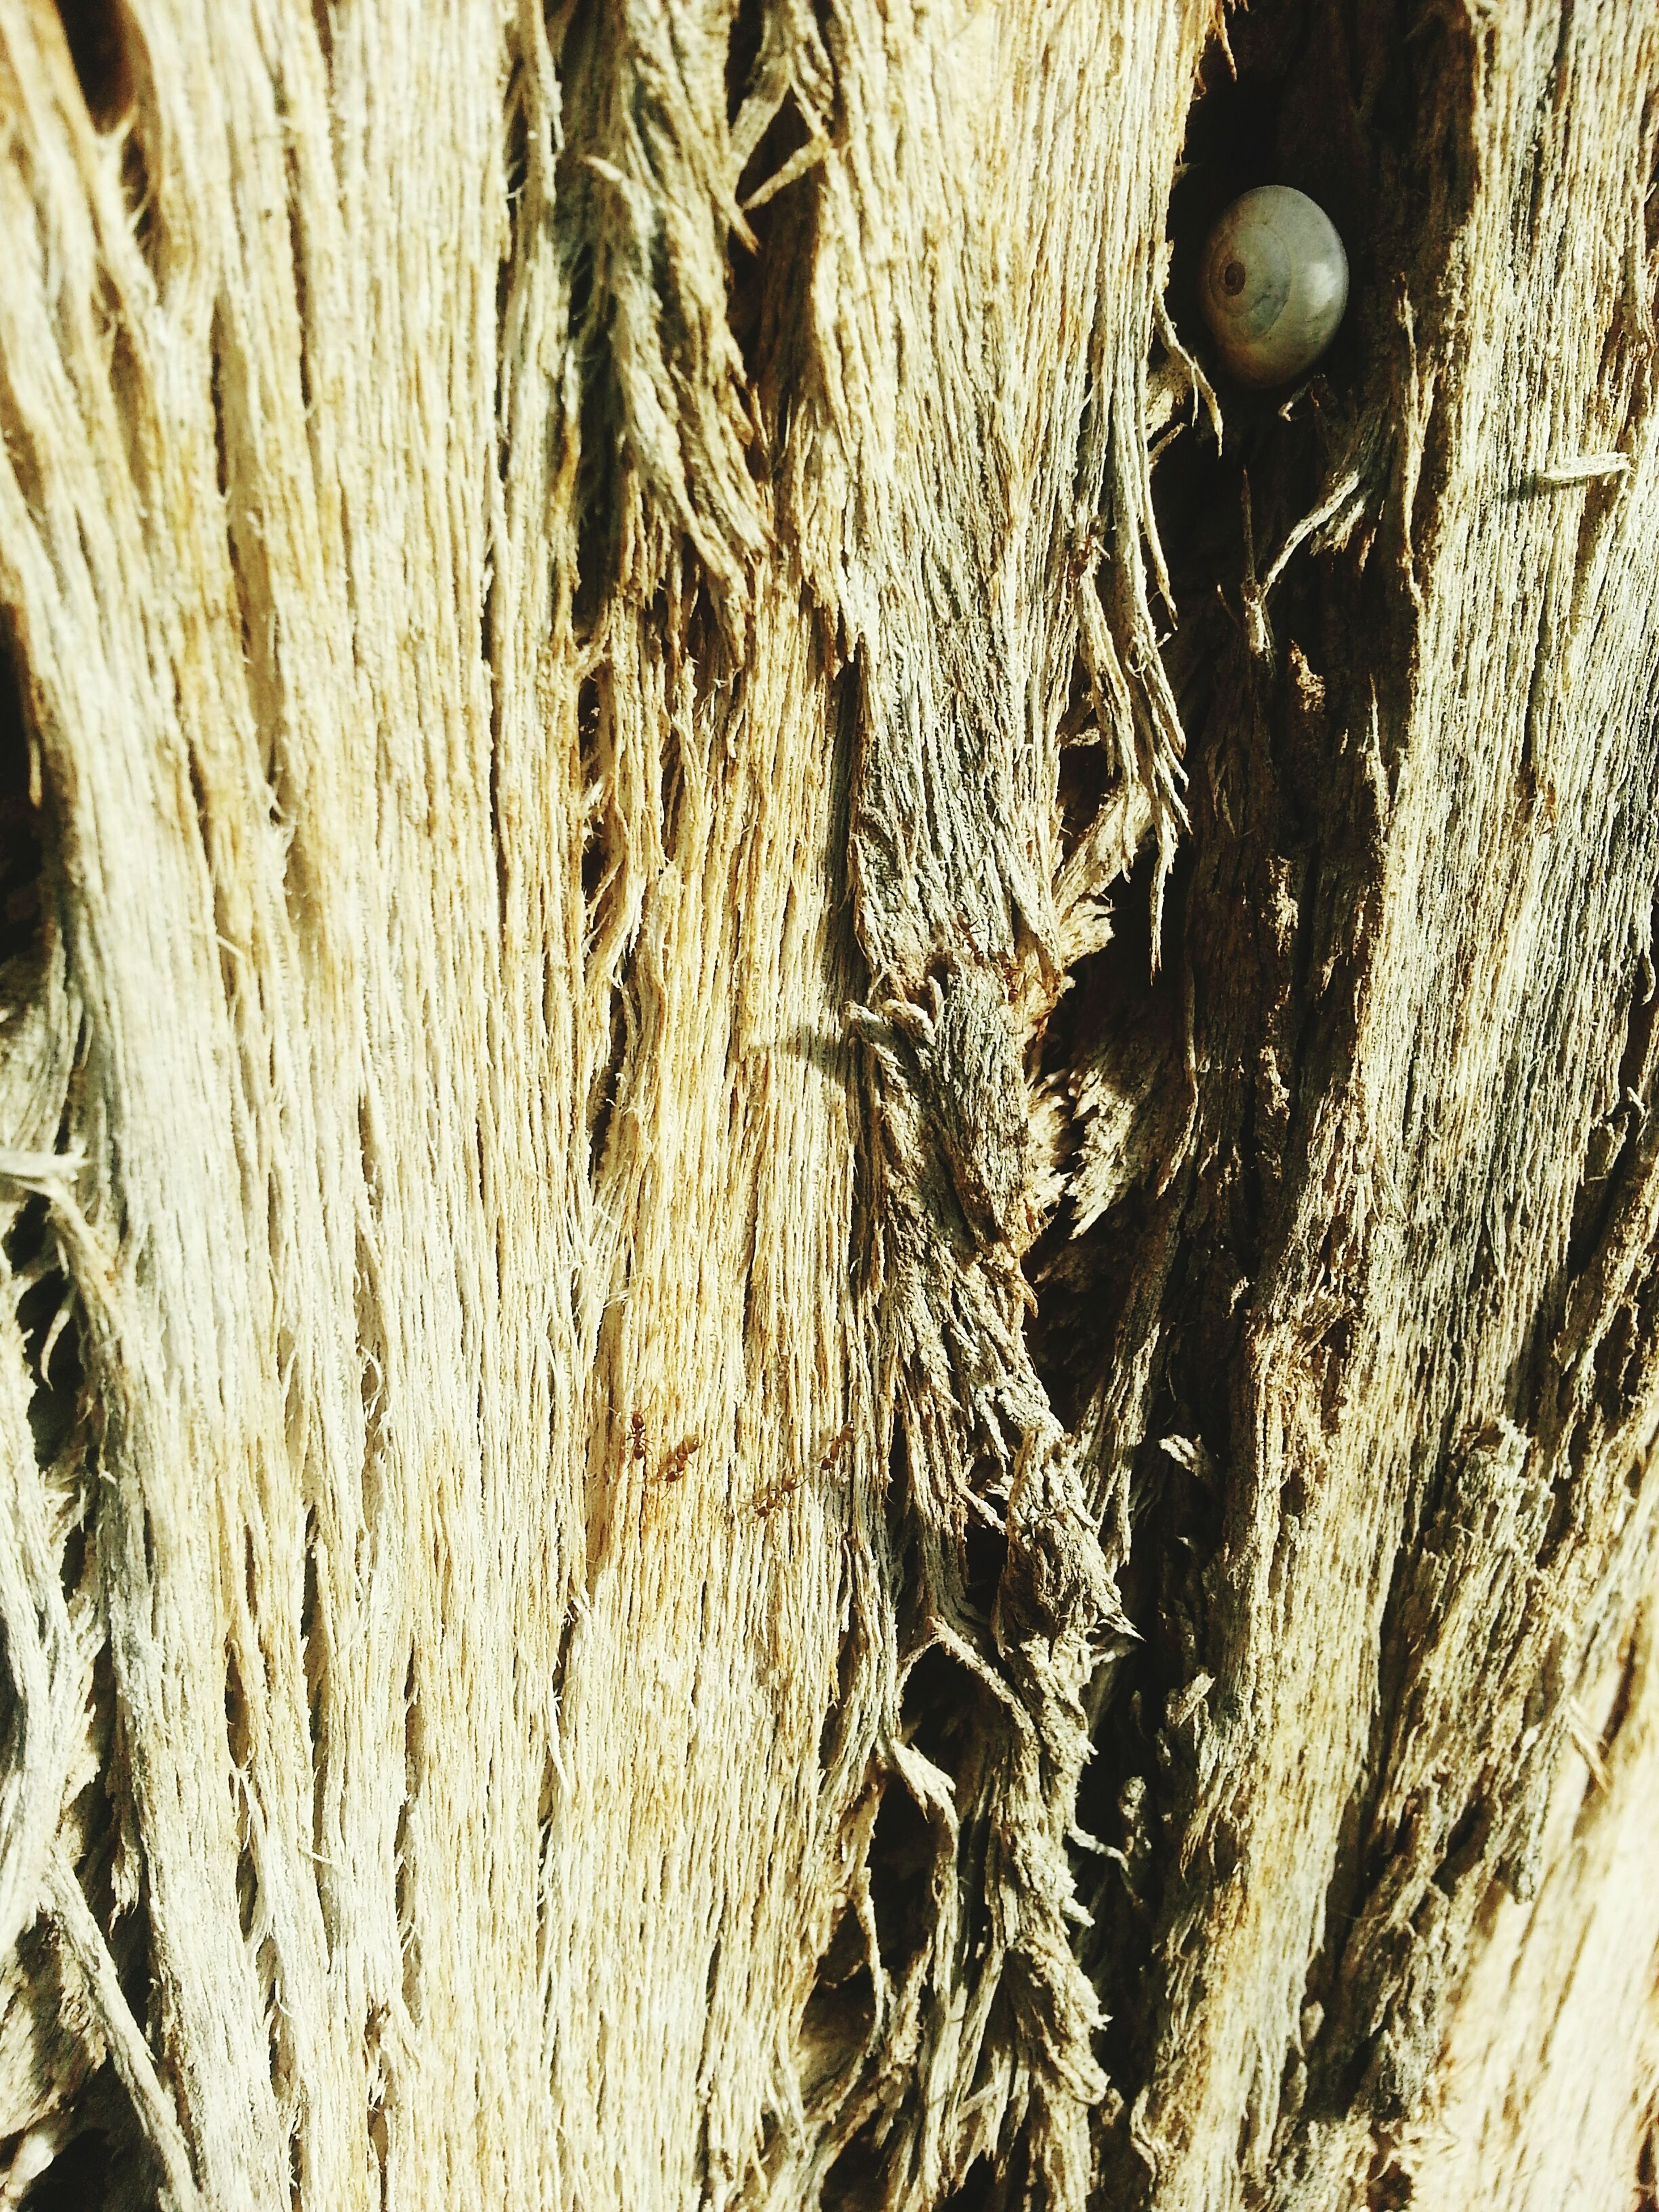 full frame, textured, close-up, backgrounds, wood - material, pattern, natural pattern, tree trunk, detail, nature, no people, wood, rough, brown, outdoors, day, high angle view, bark, part of